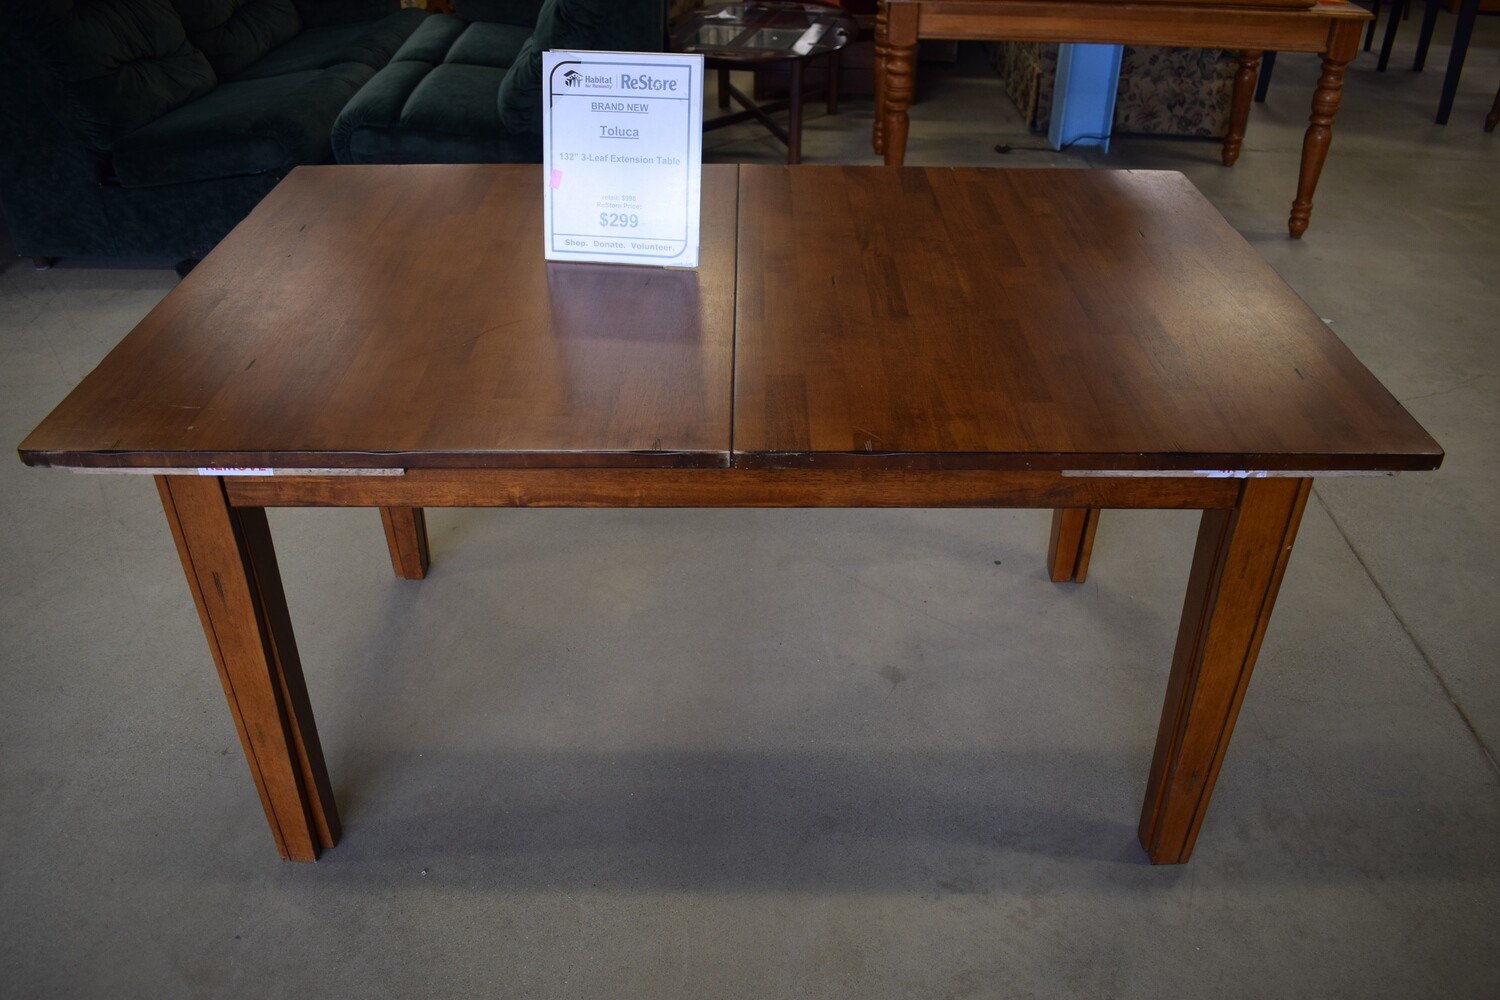 Toluca Extendable Dining Table w/ 3 Leaves